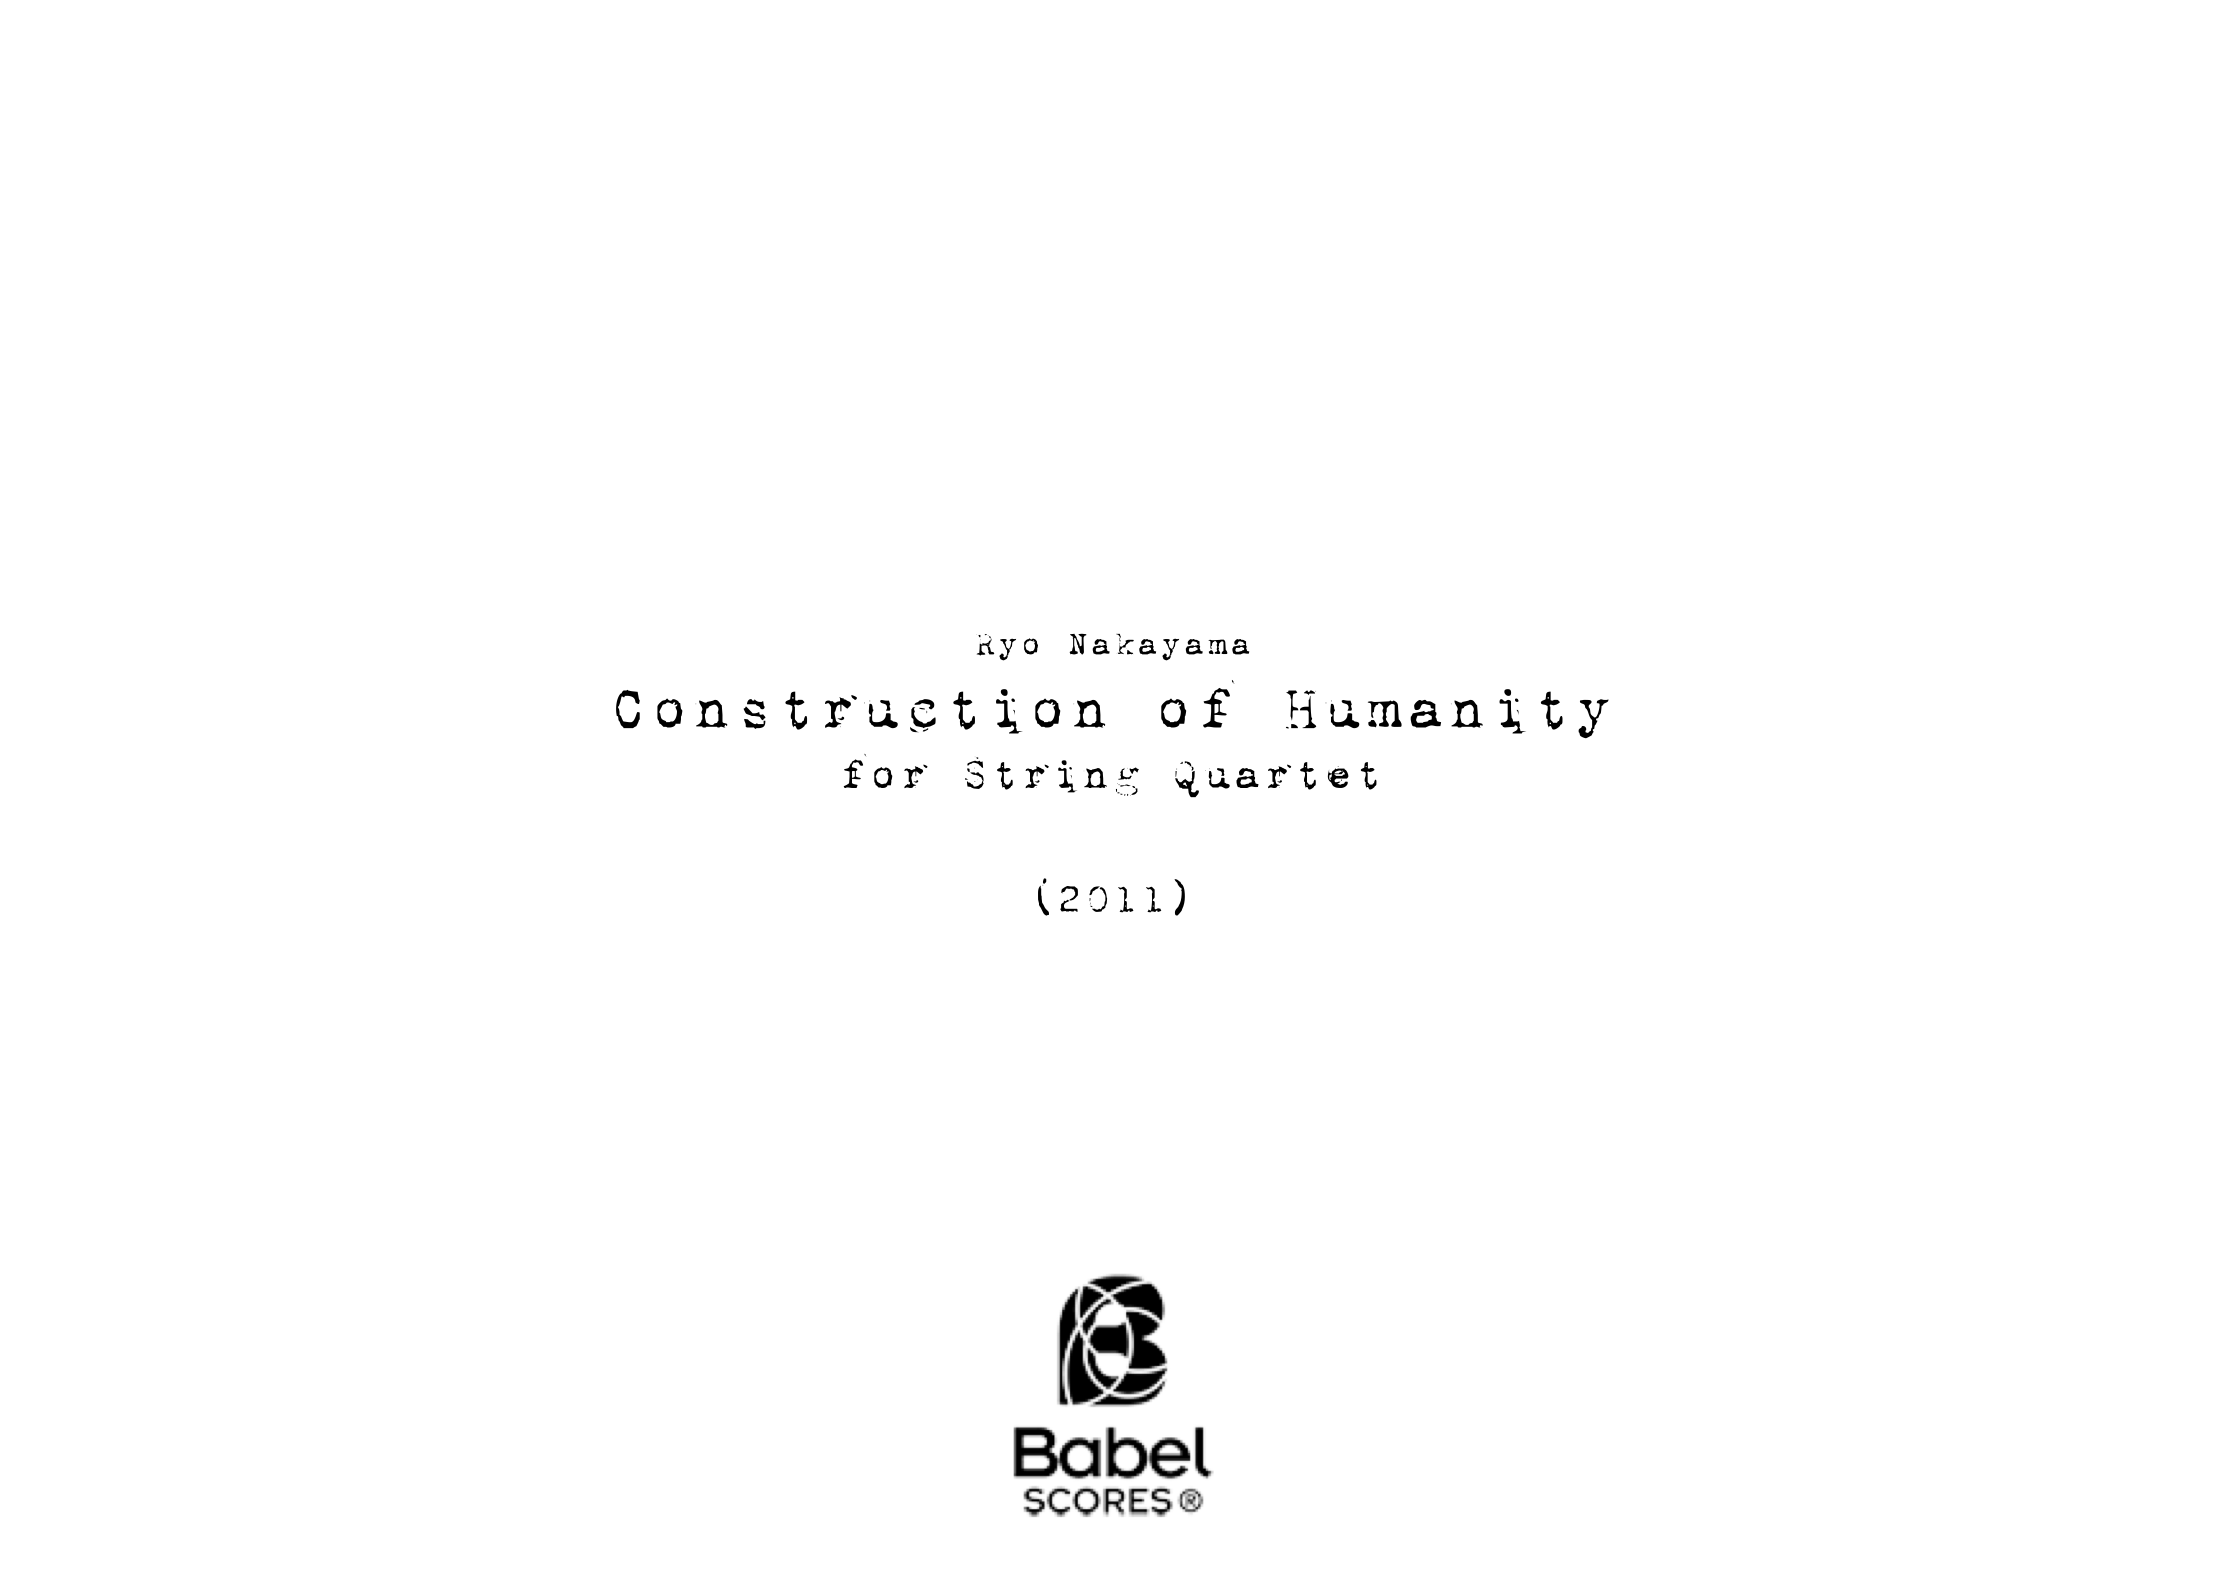 ConstructionOfHumanity_Score z